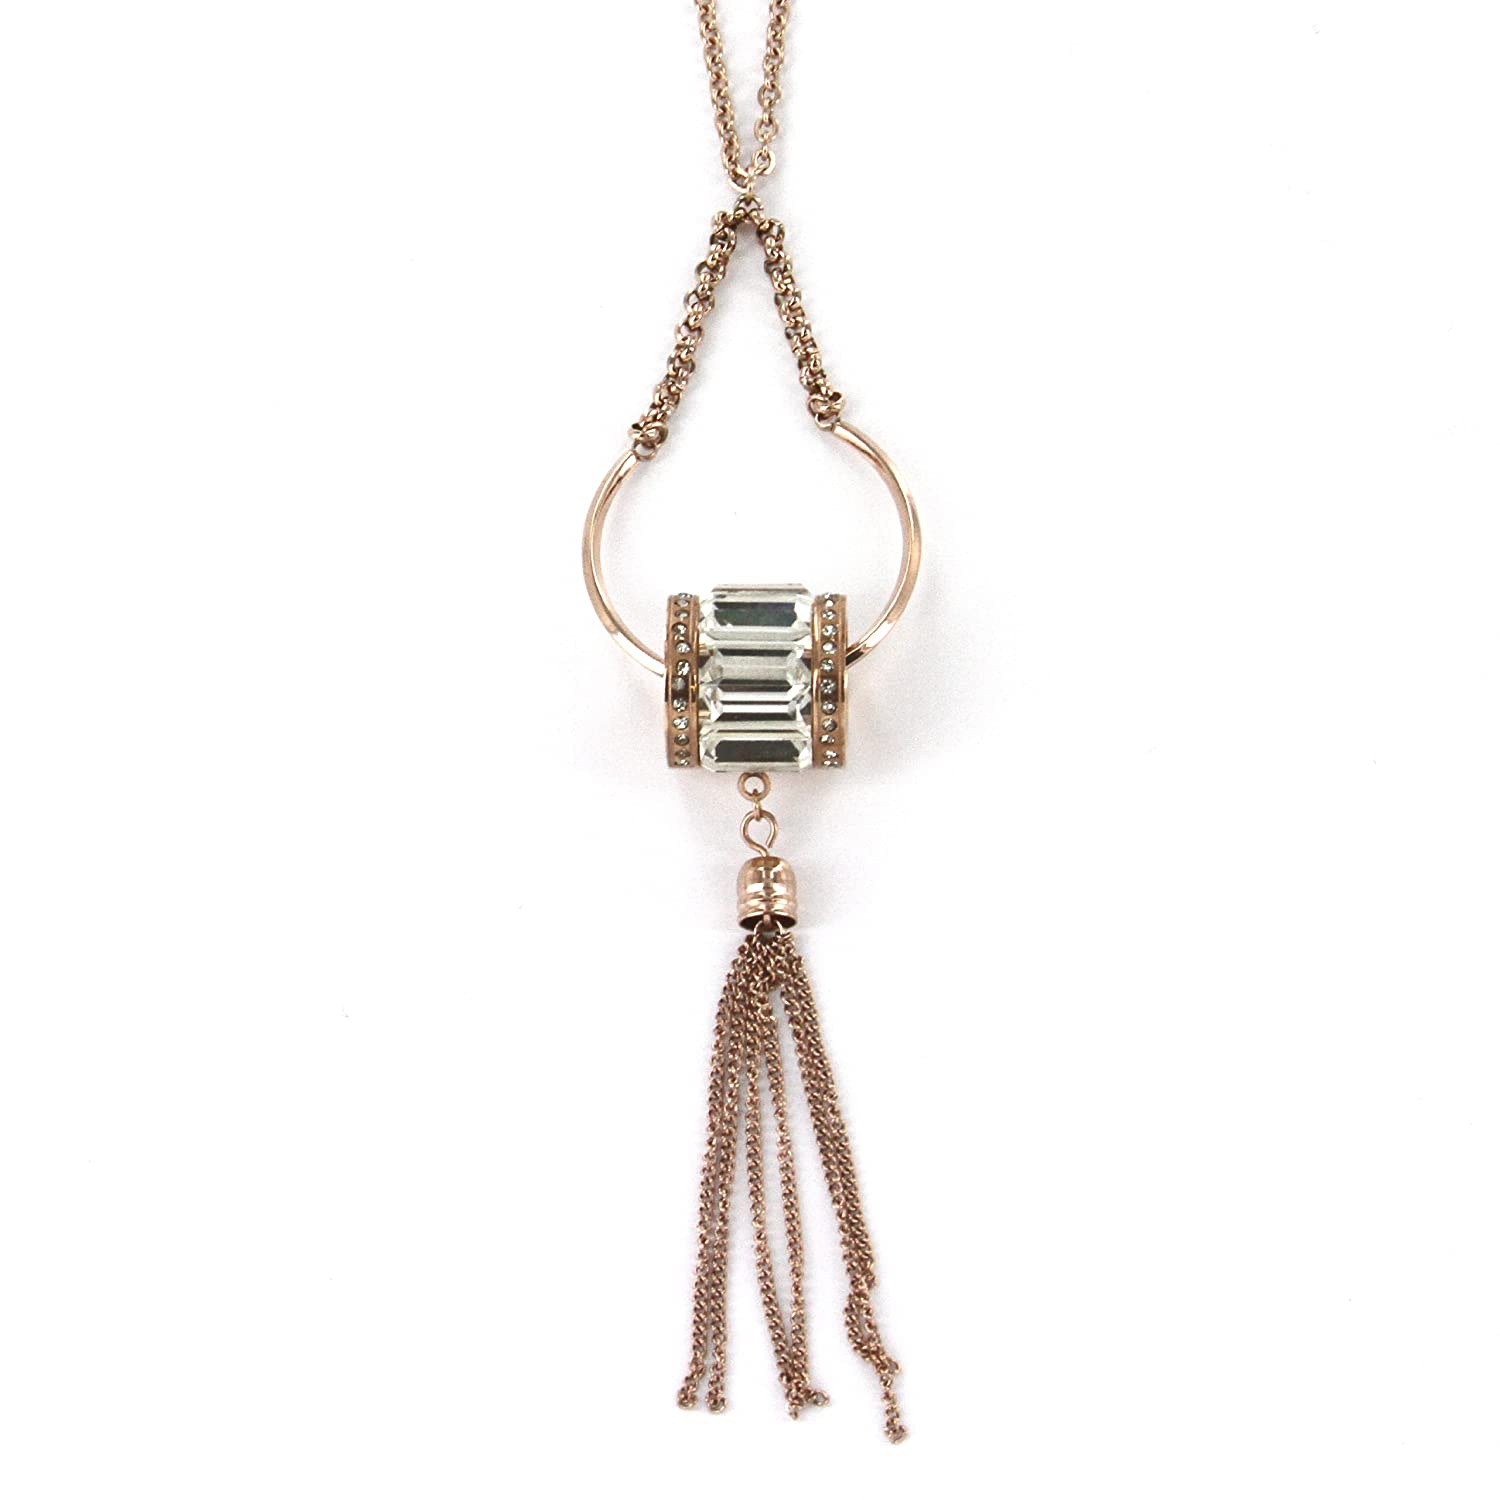 4 Dangle Pendant and 19 Necklace with 2 Extender Stainless Steel Rose Gold Color Barrel Shape Bead Fashion Pendant Necklace in Multiple Crystals